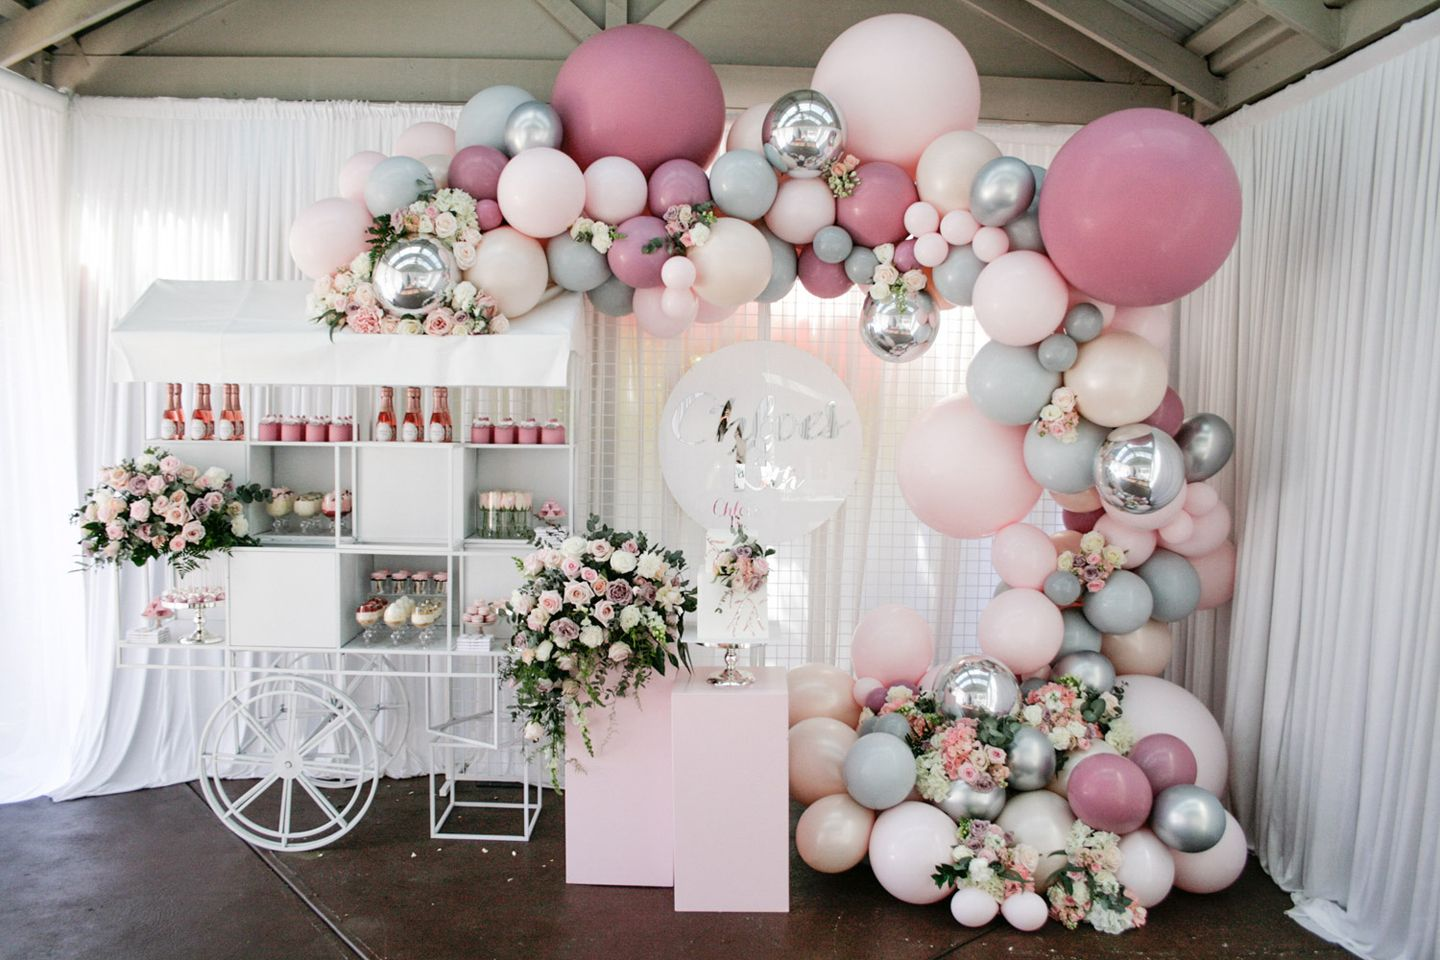 girls-photo-baby-glamour-party-decorations-long-the-average